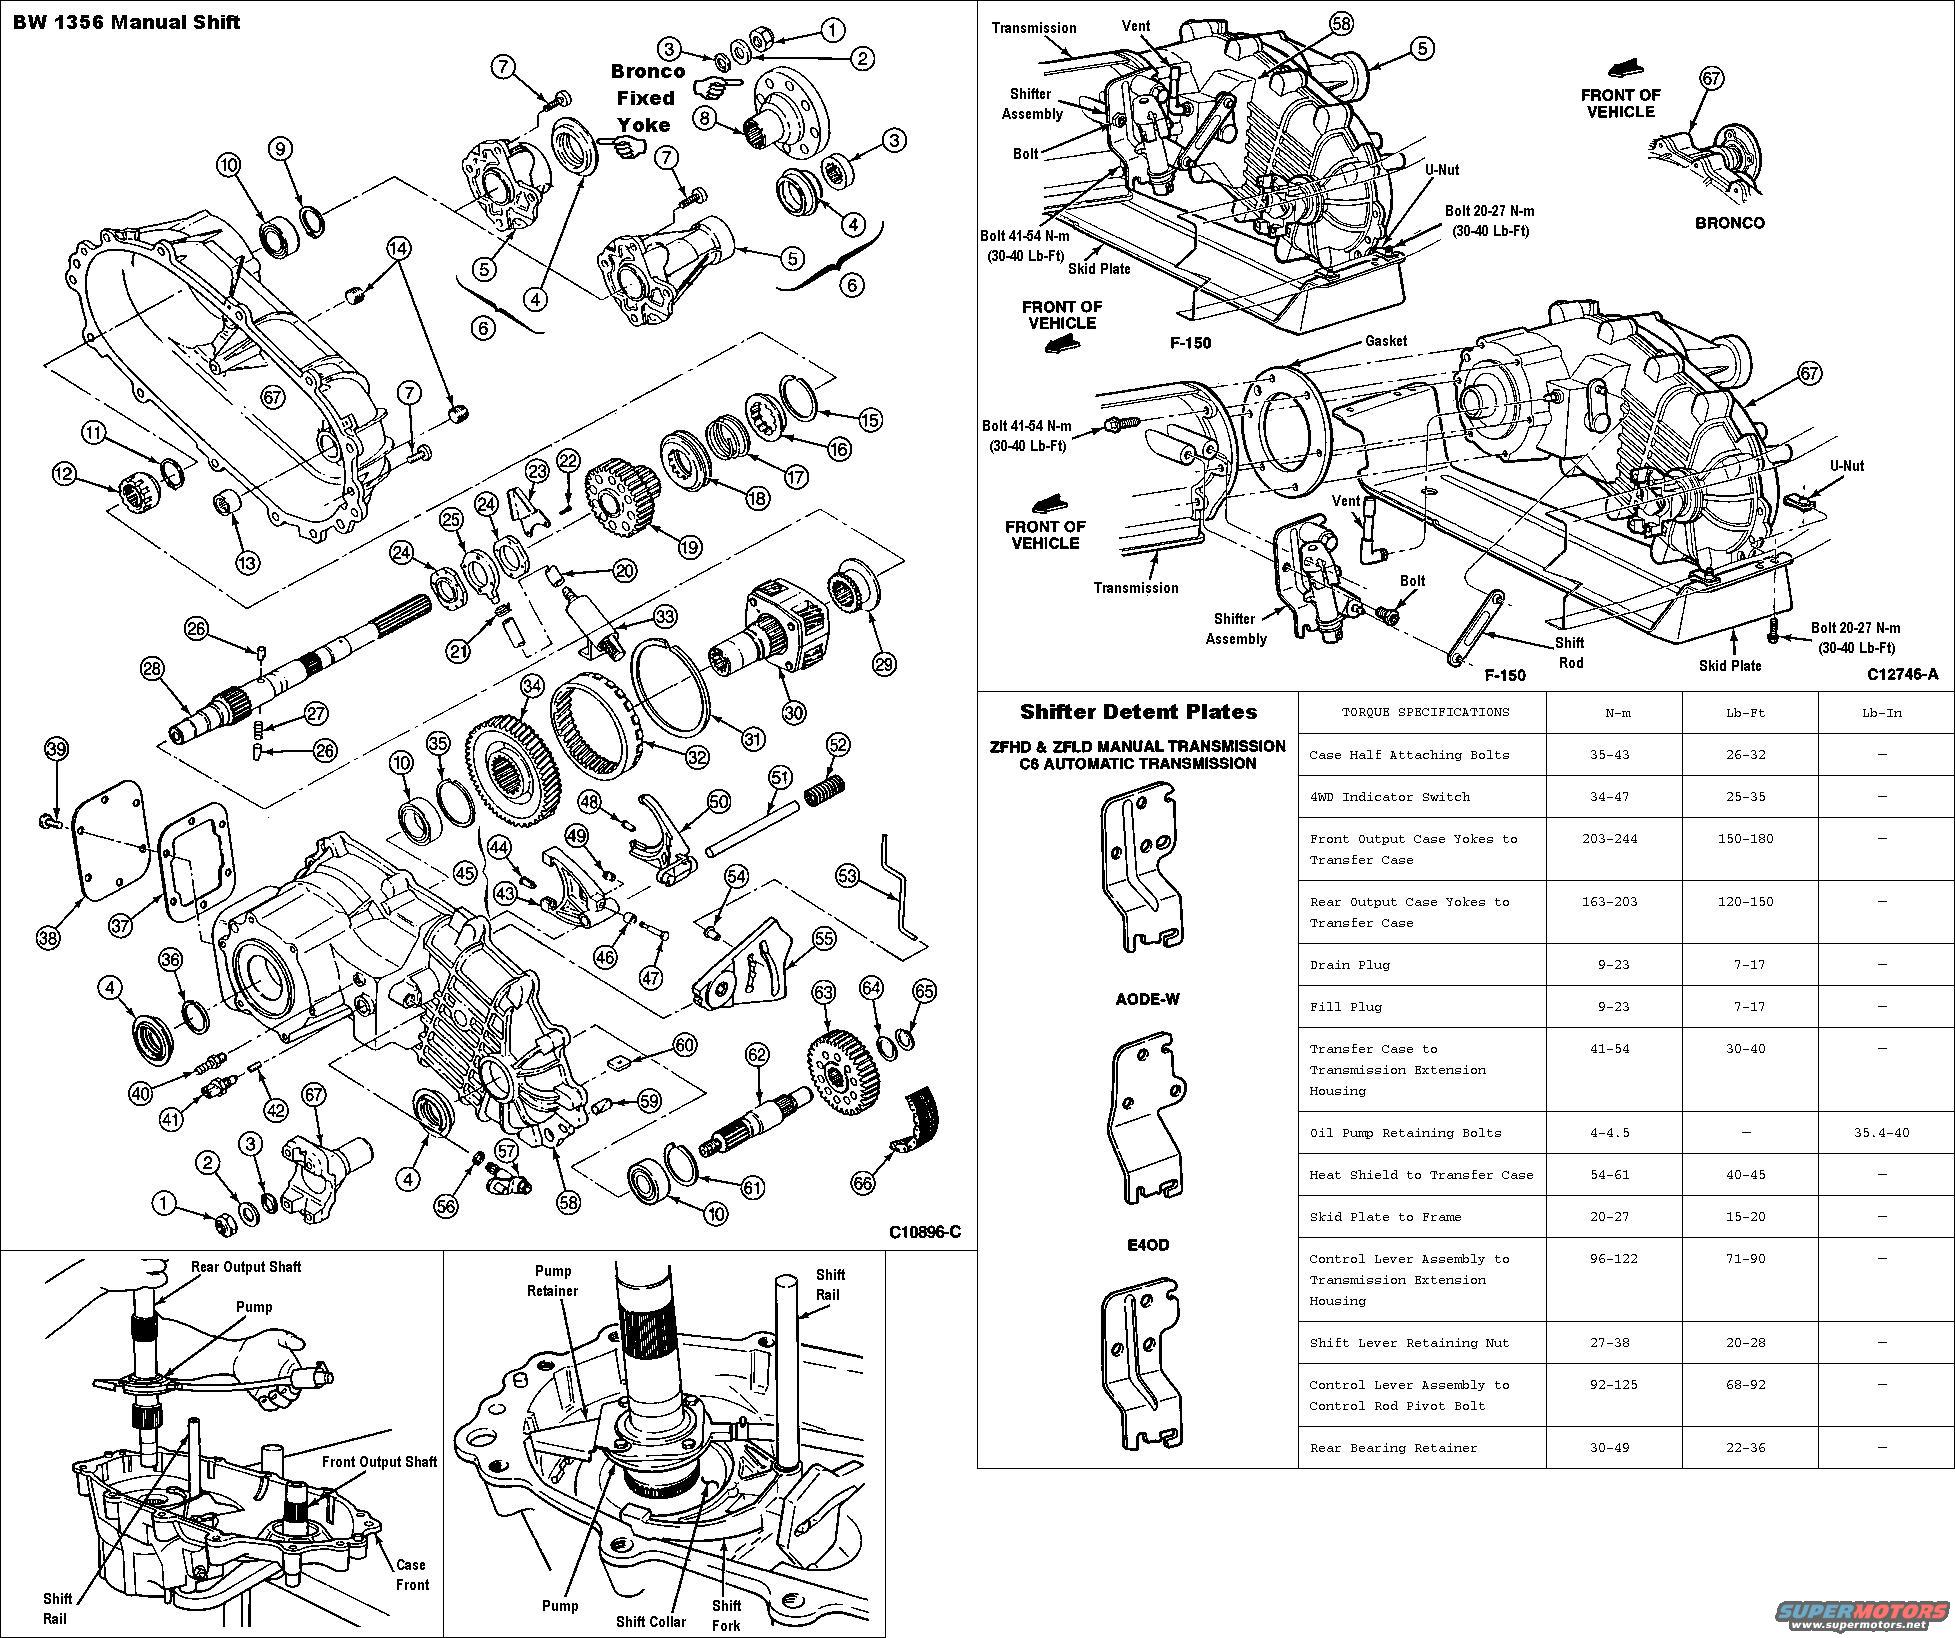 89 Bronco Wiring Diagram Get Free Image About